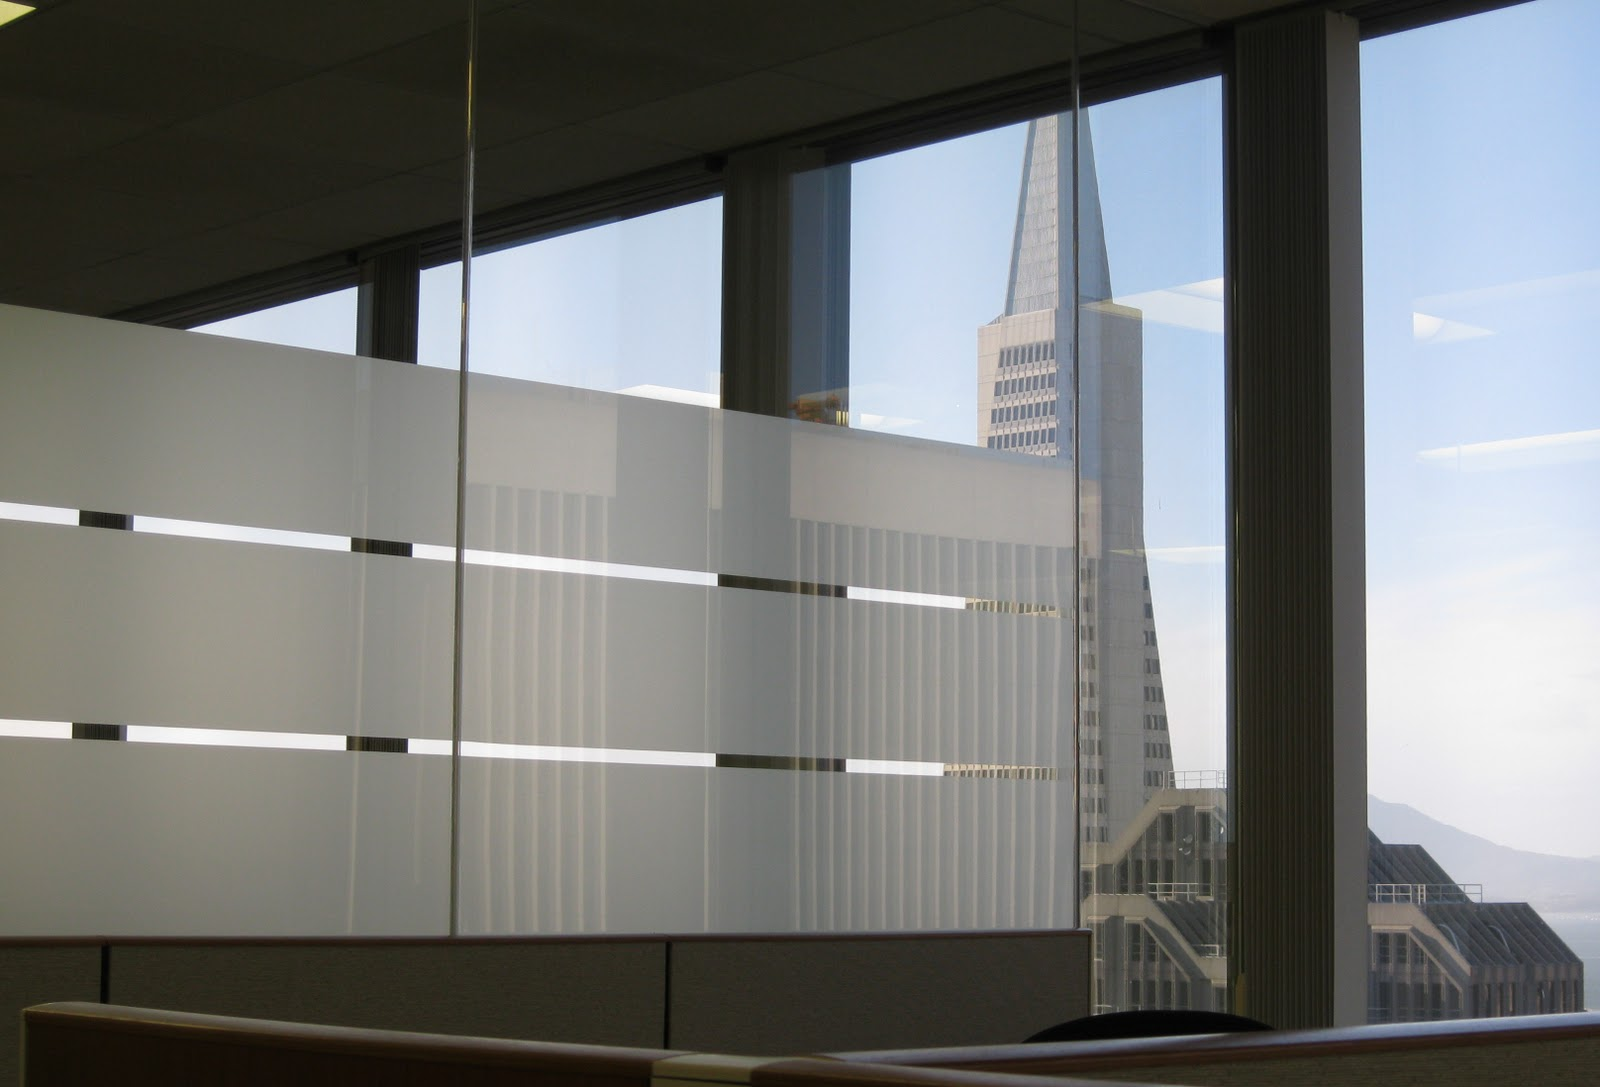 3m commercial window tinting privacy film by reflections for Window tint film